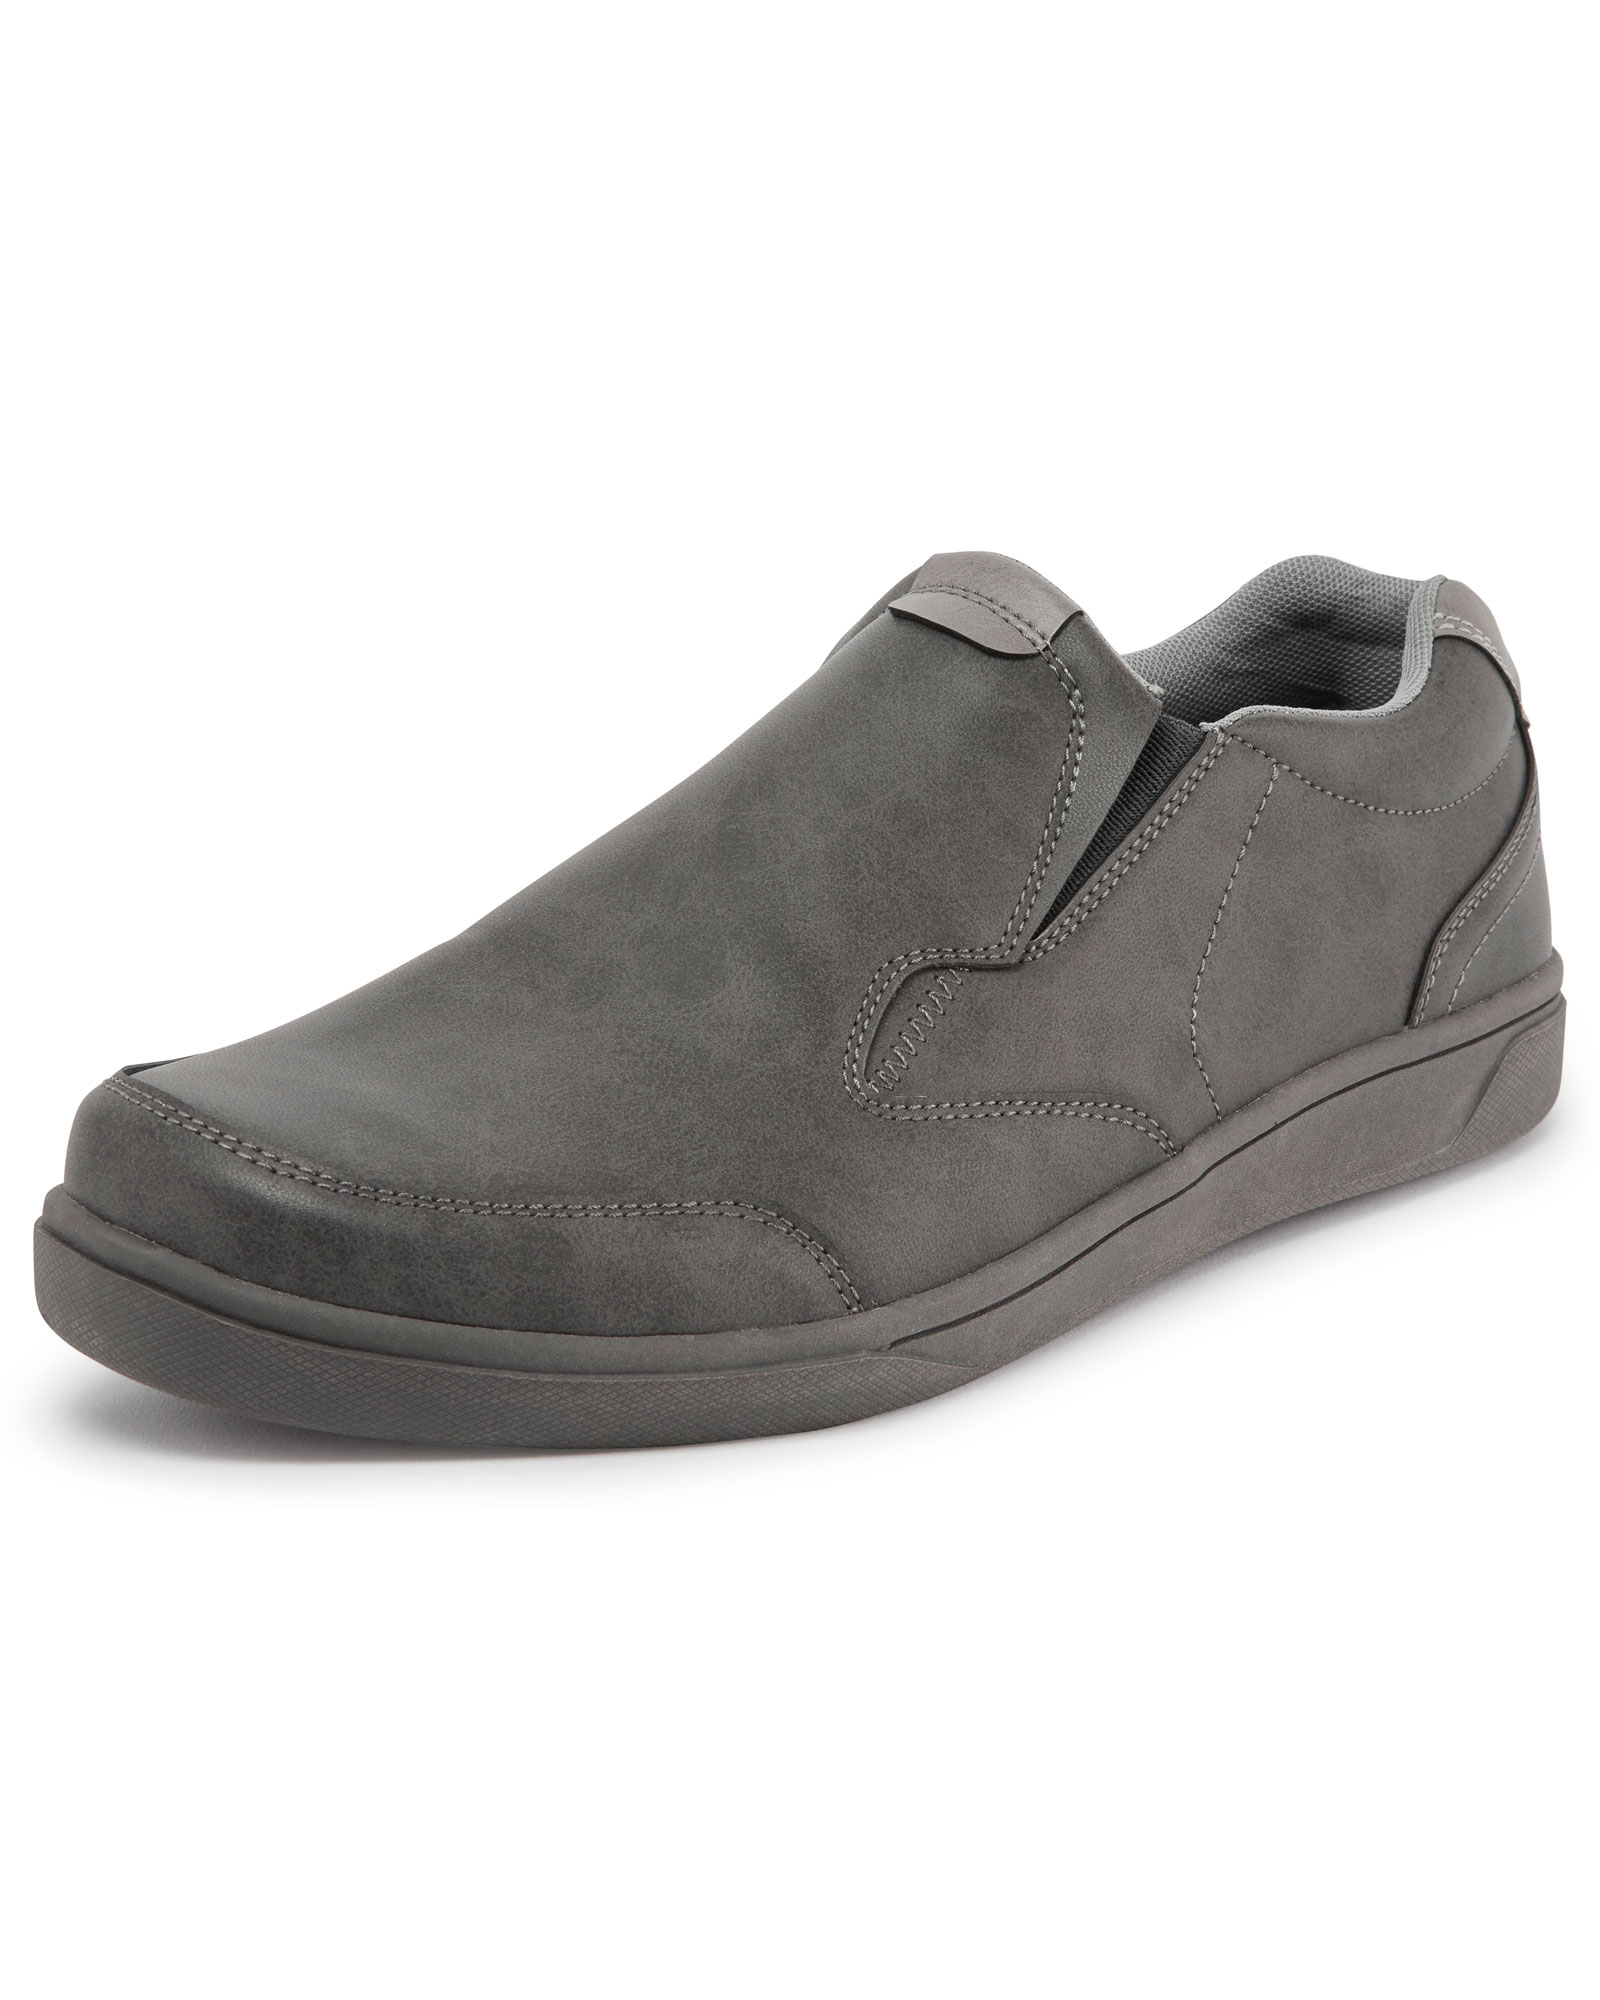 Casual Slip-on Trainers at Cotton Traders